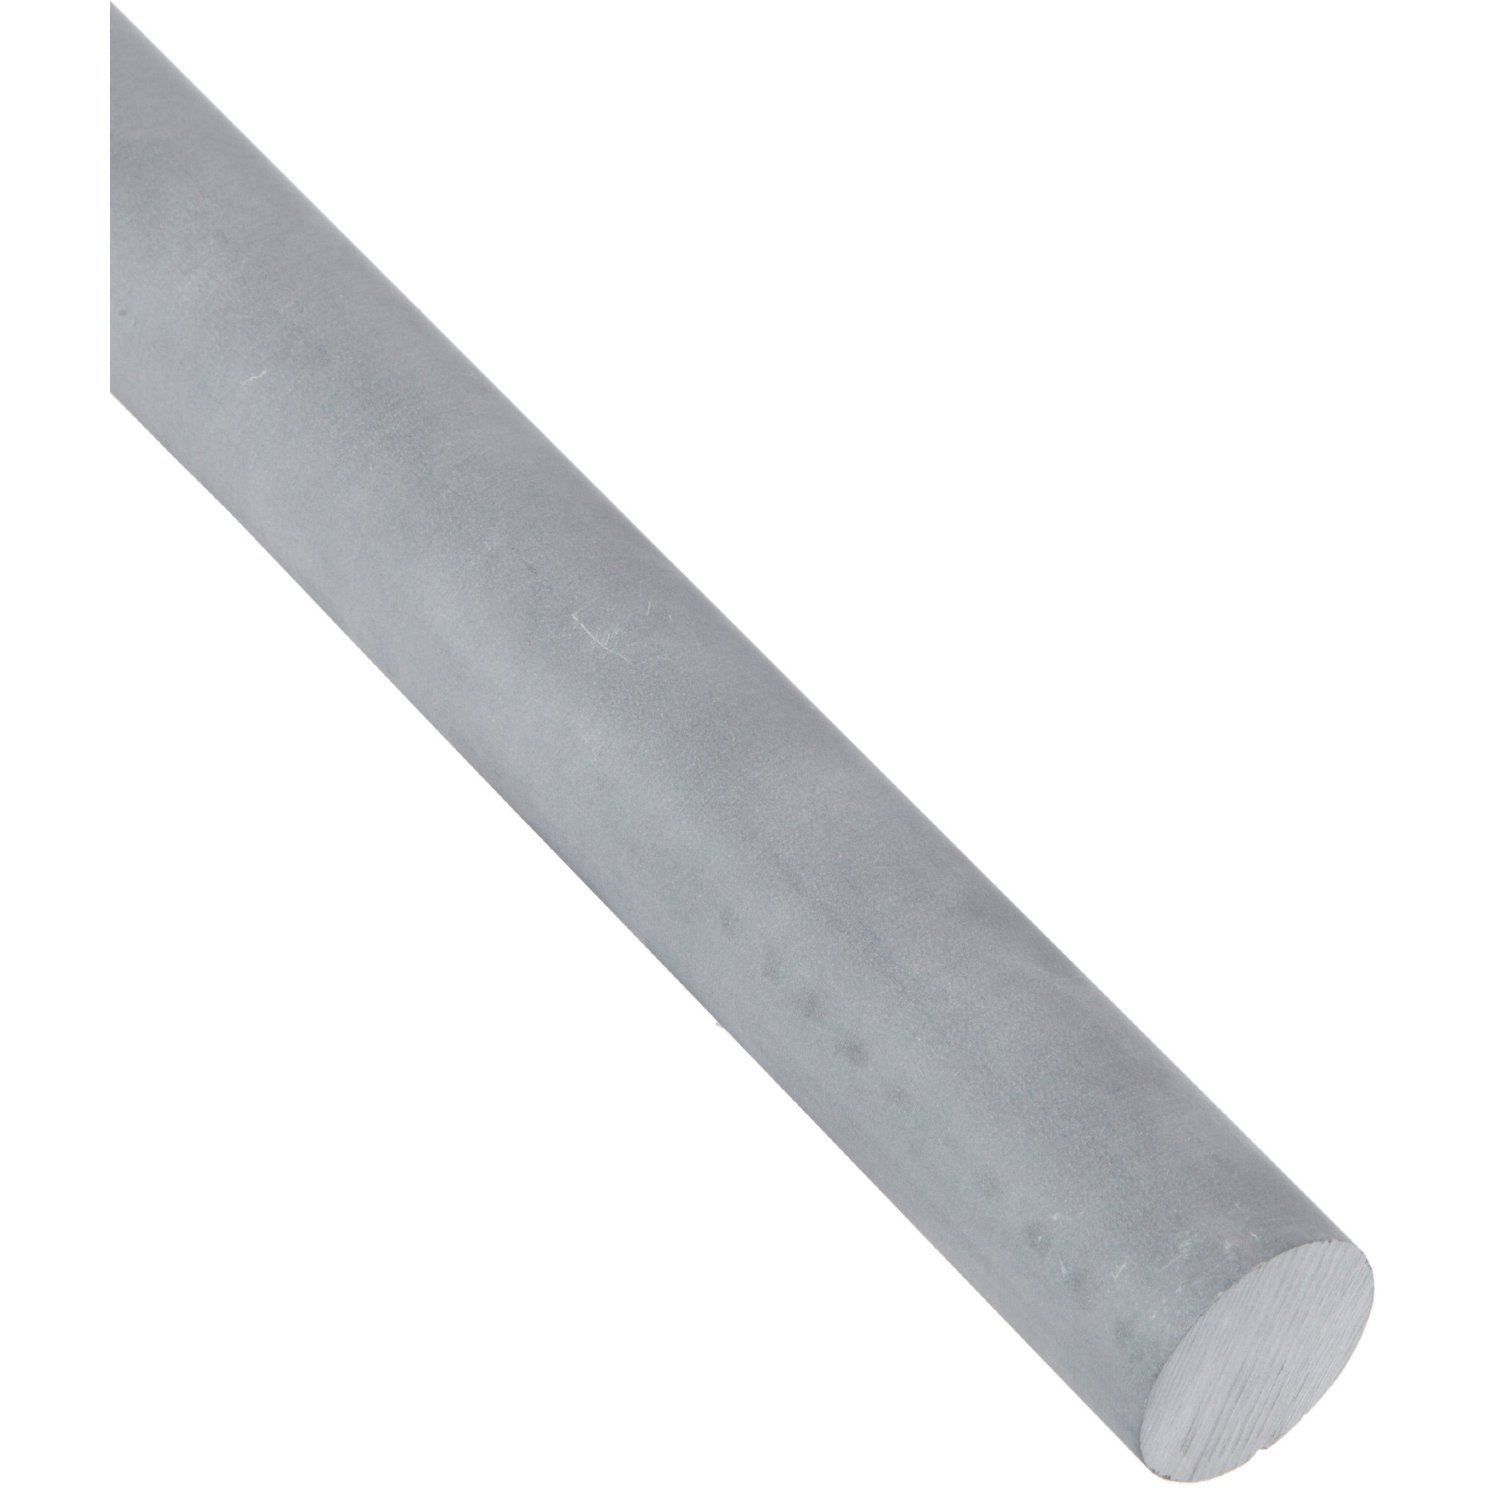 7//8 Diameter 9 Length Rod Lava Opaque Gray Alumina Silicate Ceramic